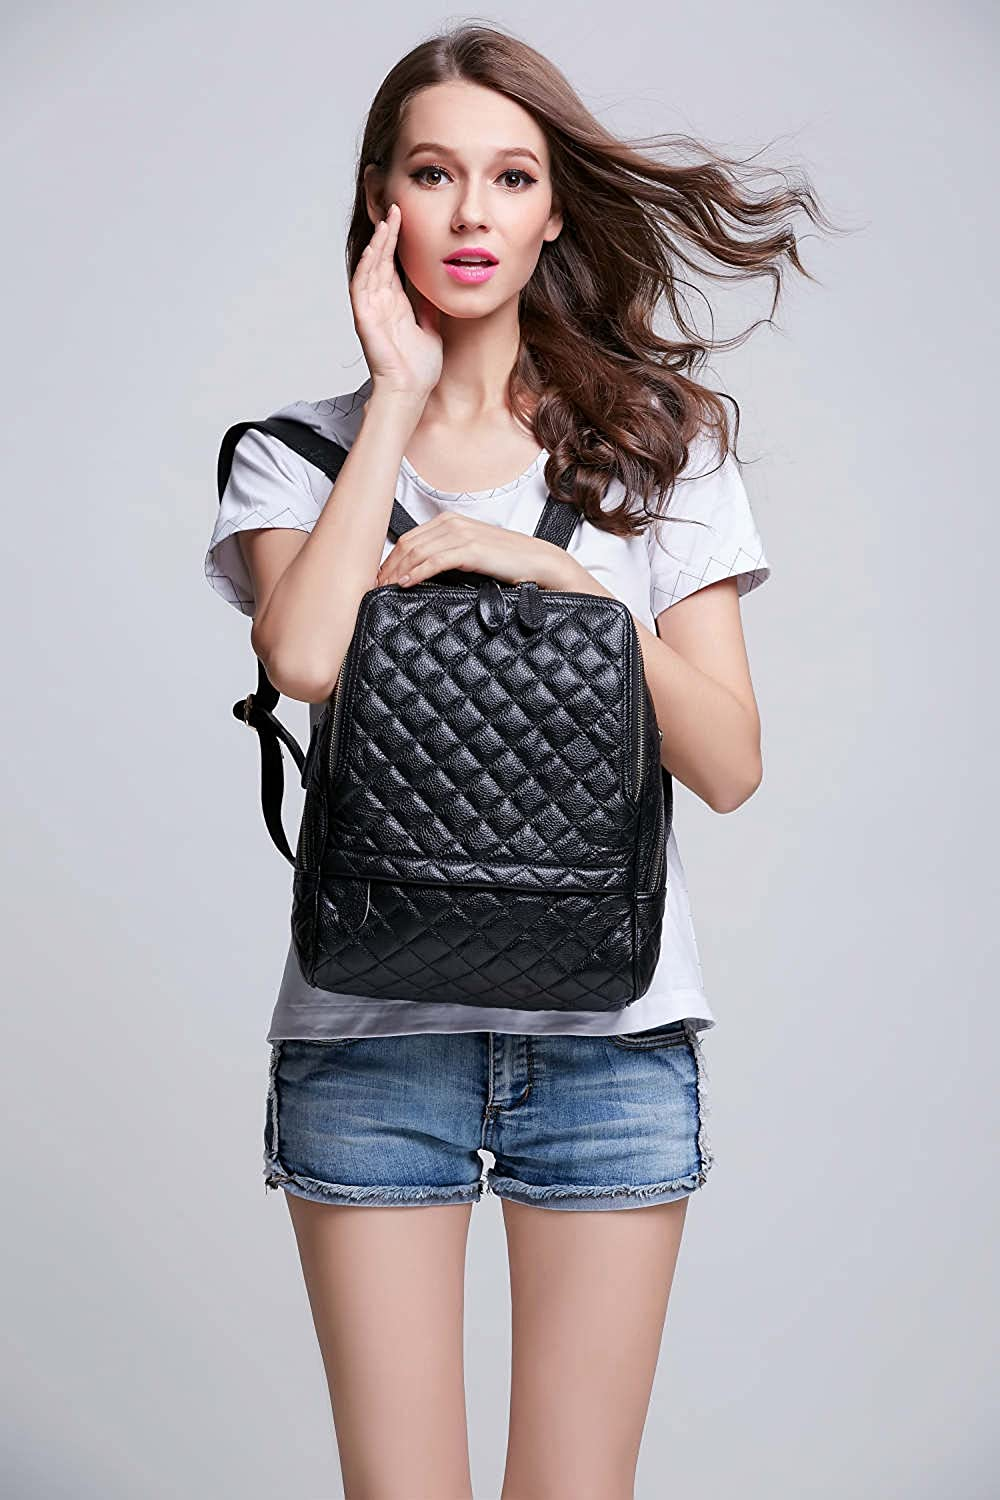 fb848deee41 Coolcy Casual Women Real Genuine Leather Backpack New Vintage Style  Shoulder Bag